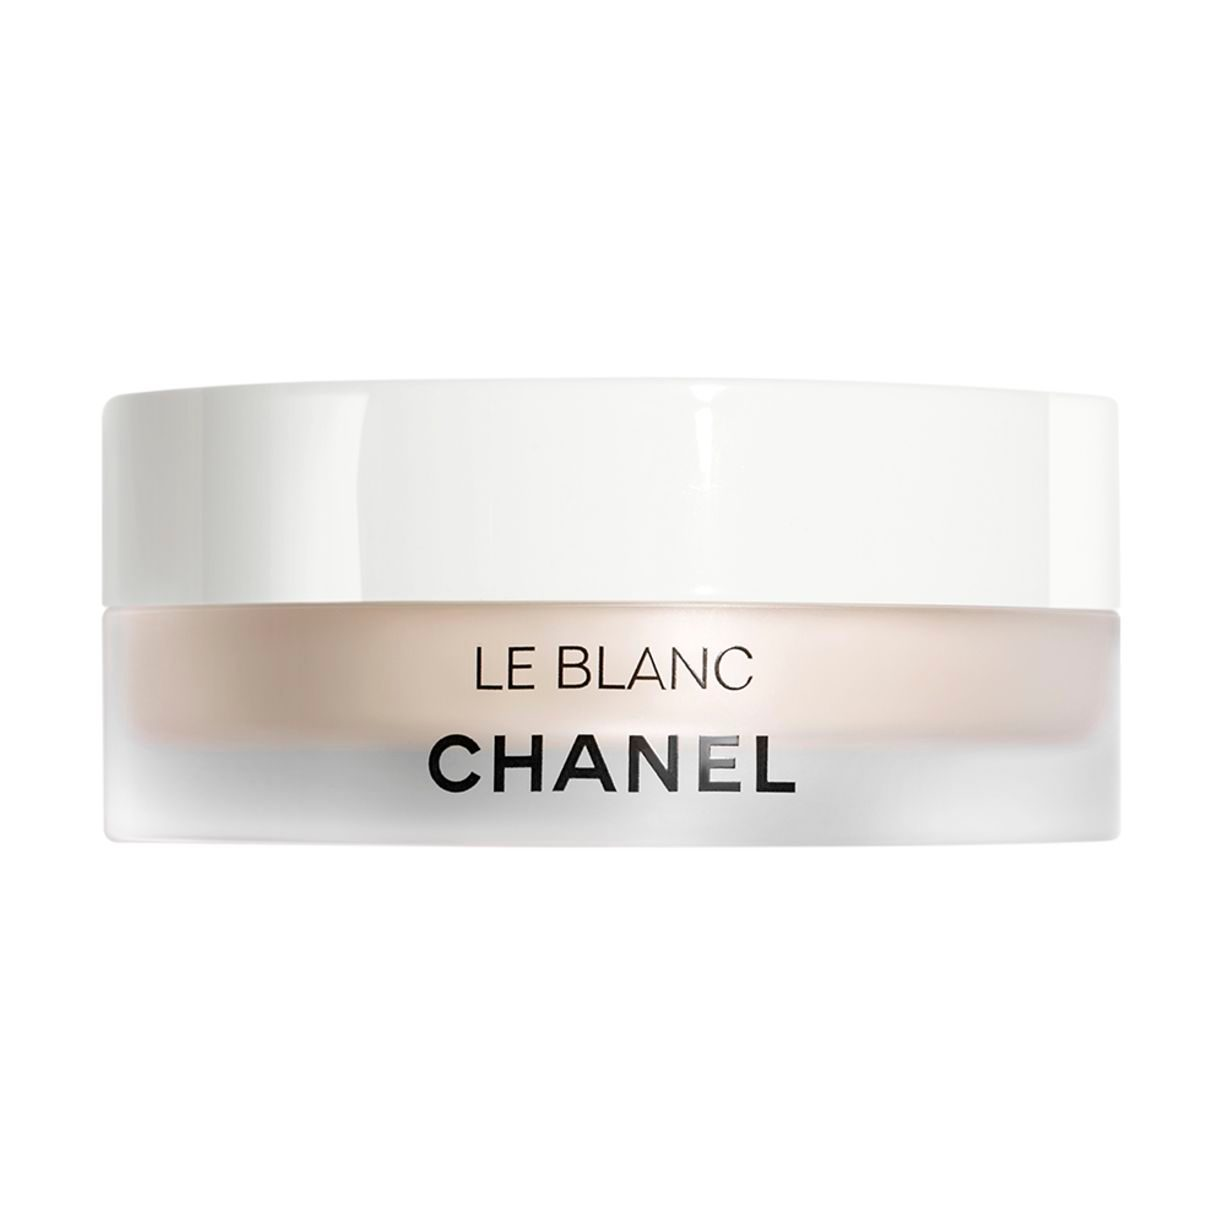 LE BLANC UV PROTECTION WHITENING LOOSE POWDER SPF 50 10g